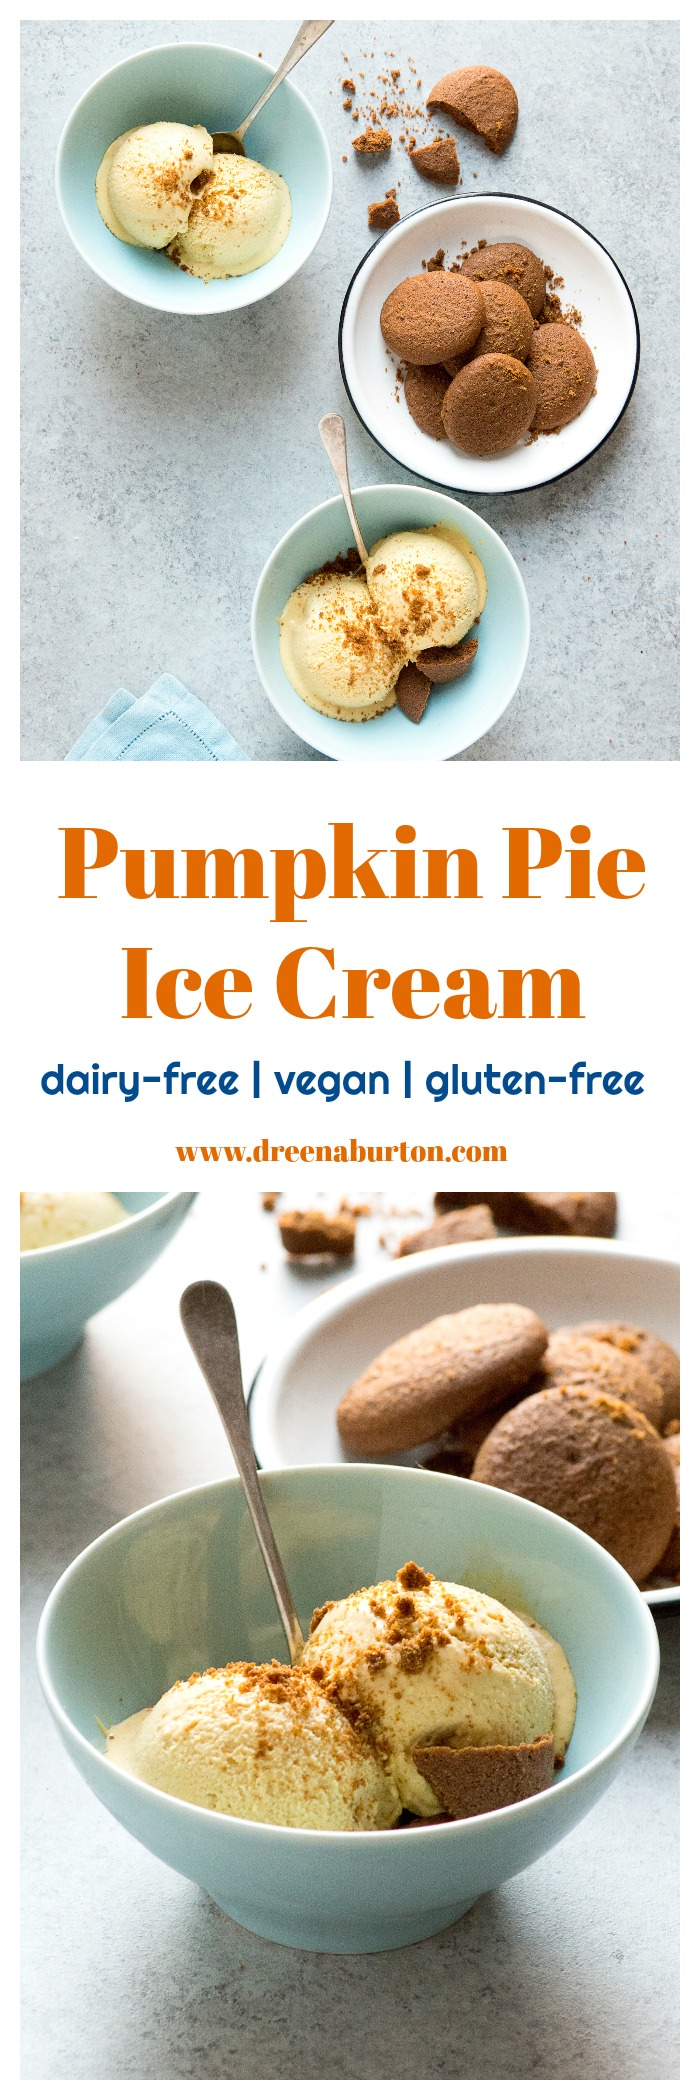 Pumpkin Pie Ice Cream (vegan, gluten-free, oil-free) | vegan pumpkin recipes | vegan dessert recipes | vegan fall recipes | fall inspired vegan recipes | homemade ice cream recipes | vegan ice cream recipes | dairy free ice cream recipes | dairy free dessert recipes | gluten free ice cream recipes | gluten free dessert recipes || Plant Powered Kitchen